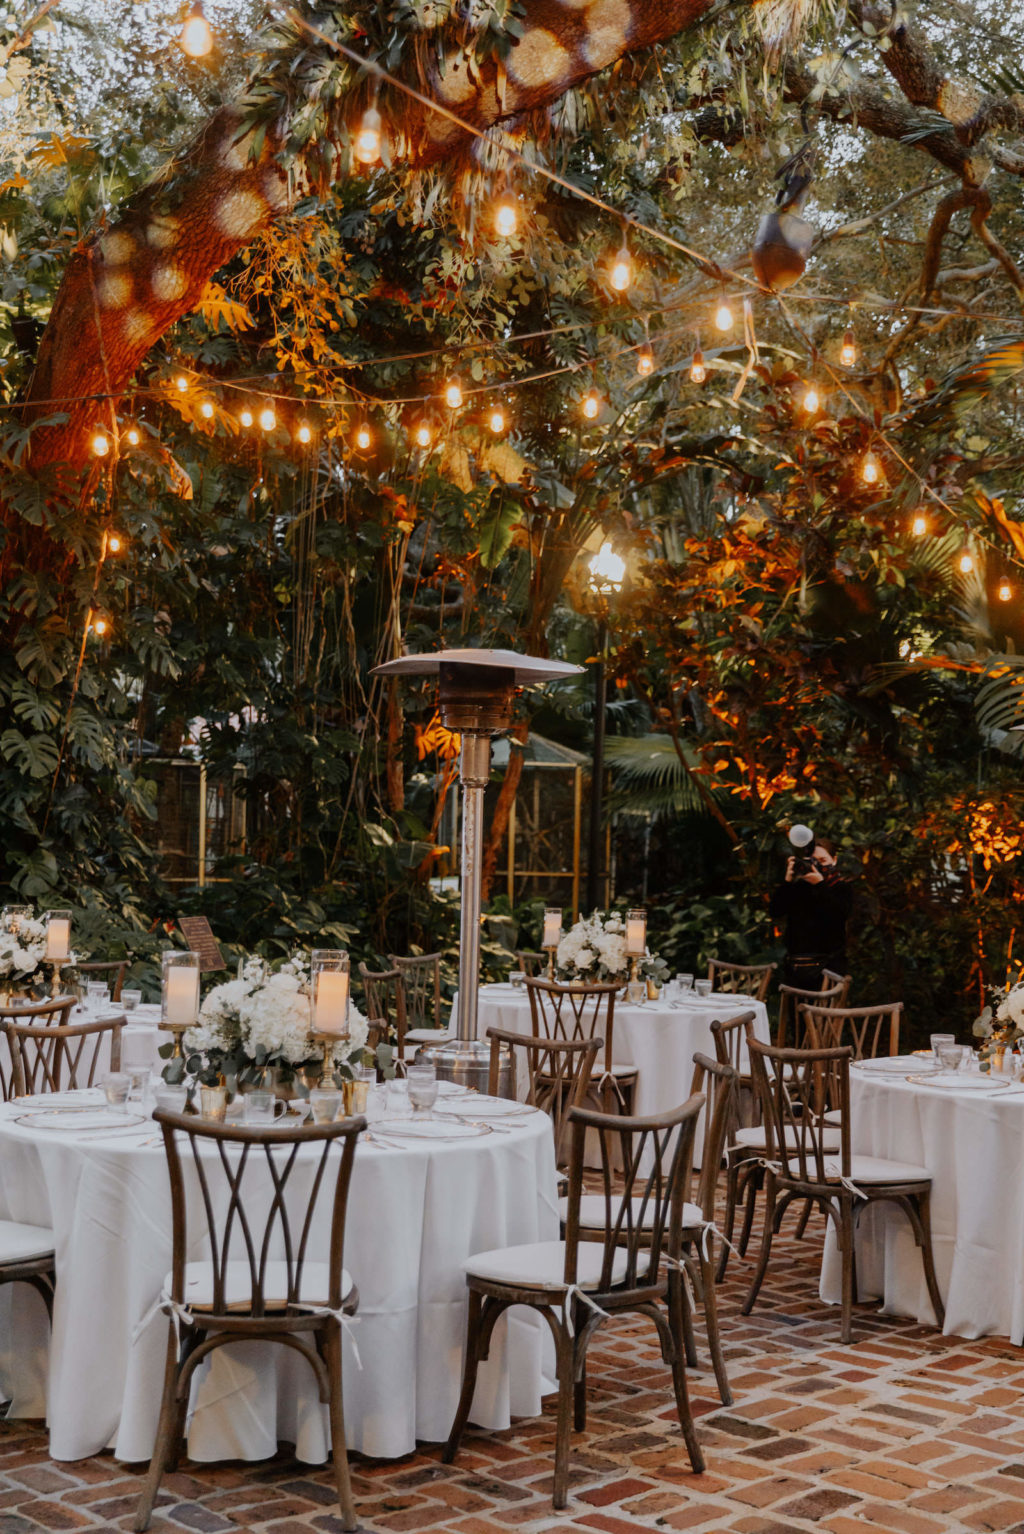 St. Pete Outdoor Wedding Reception Under the Palms with Cafe Lighting   Sunken Gardens   Crossback Wooden Chairs and Natural Centerpiece Decor